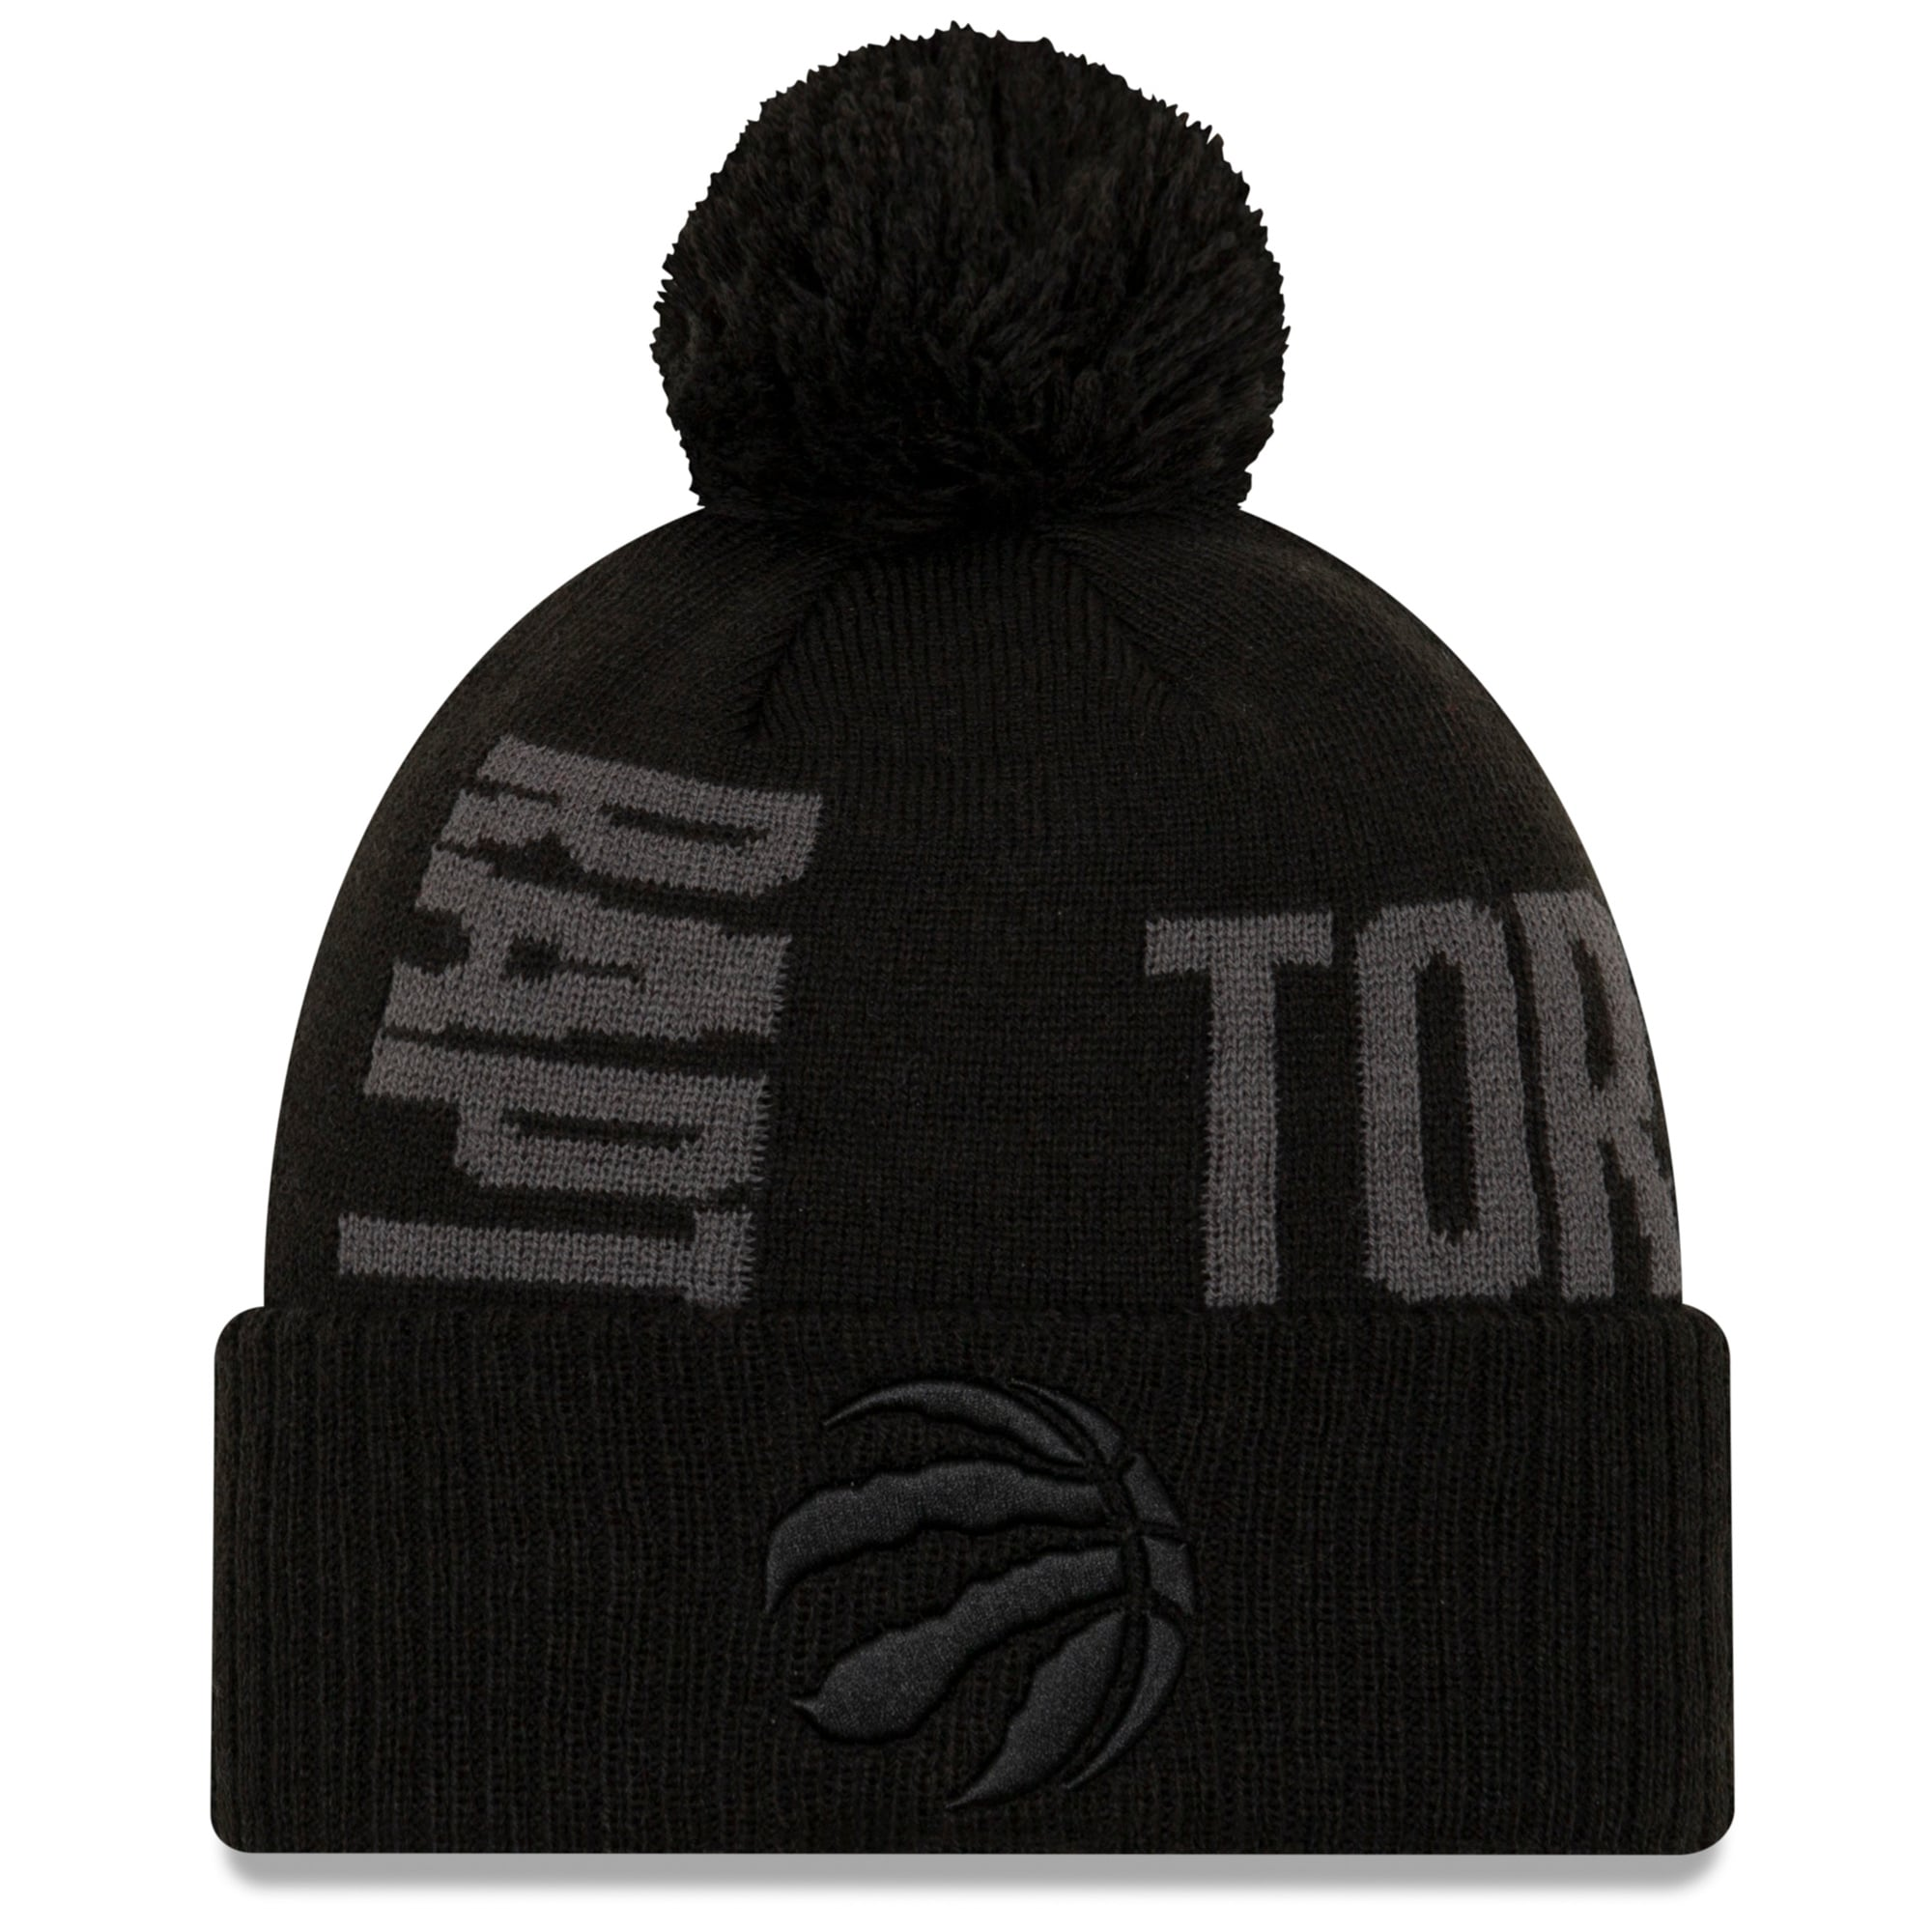 Toronto Raptors New Era 2019 NBA Tip-Off Series Tonal Cuffed Knit Hat - Black